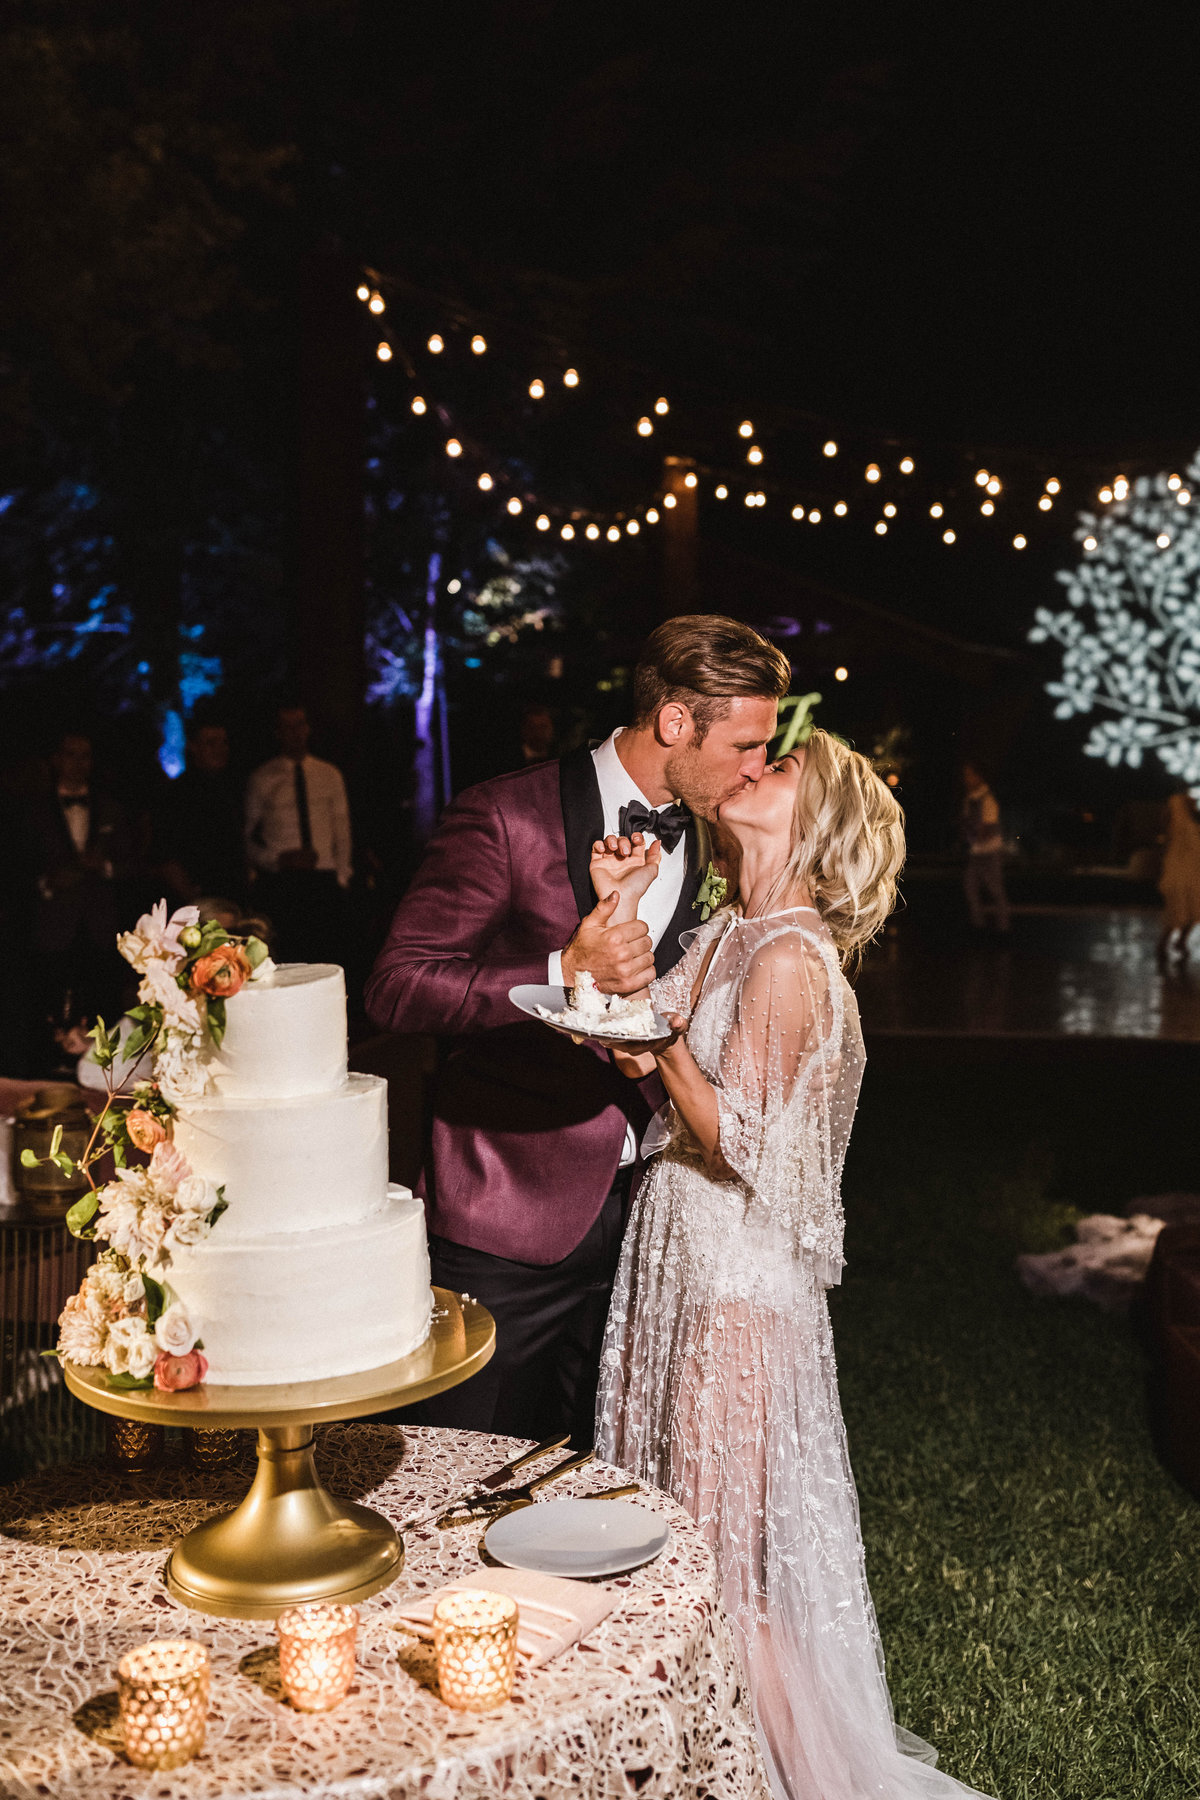 JB Wedding - CAKE KISS - sarah-falugo-julianne-hough-brooks-laich-wedding-4156